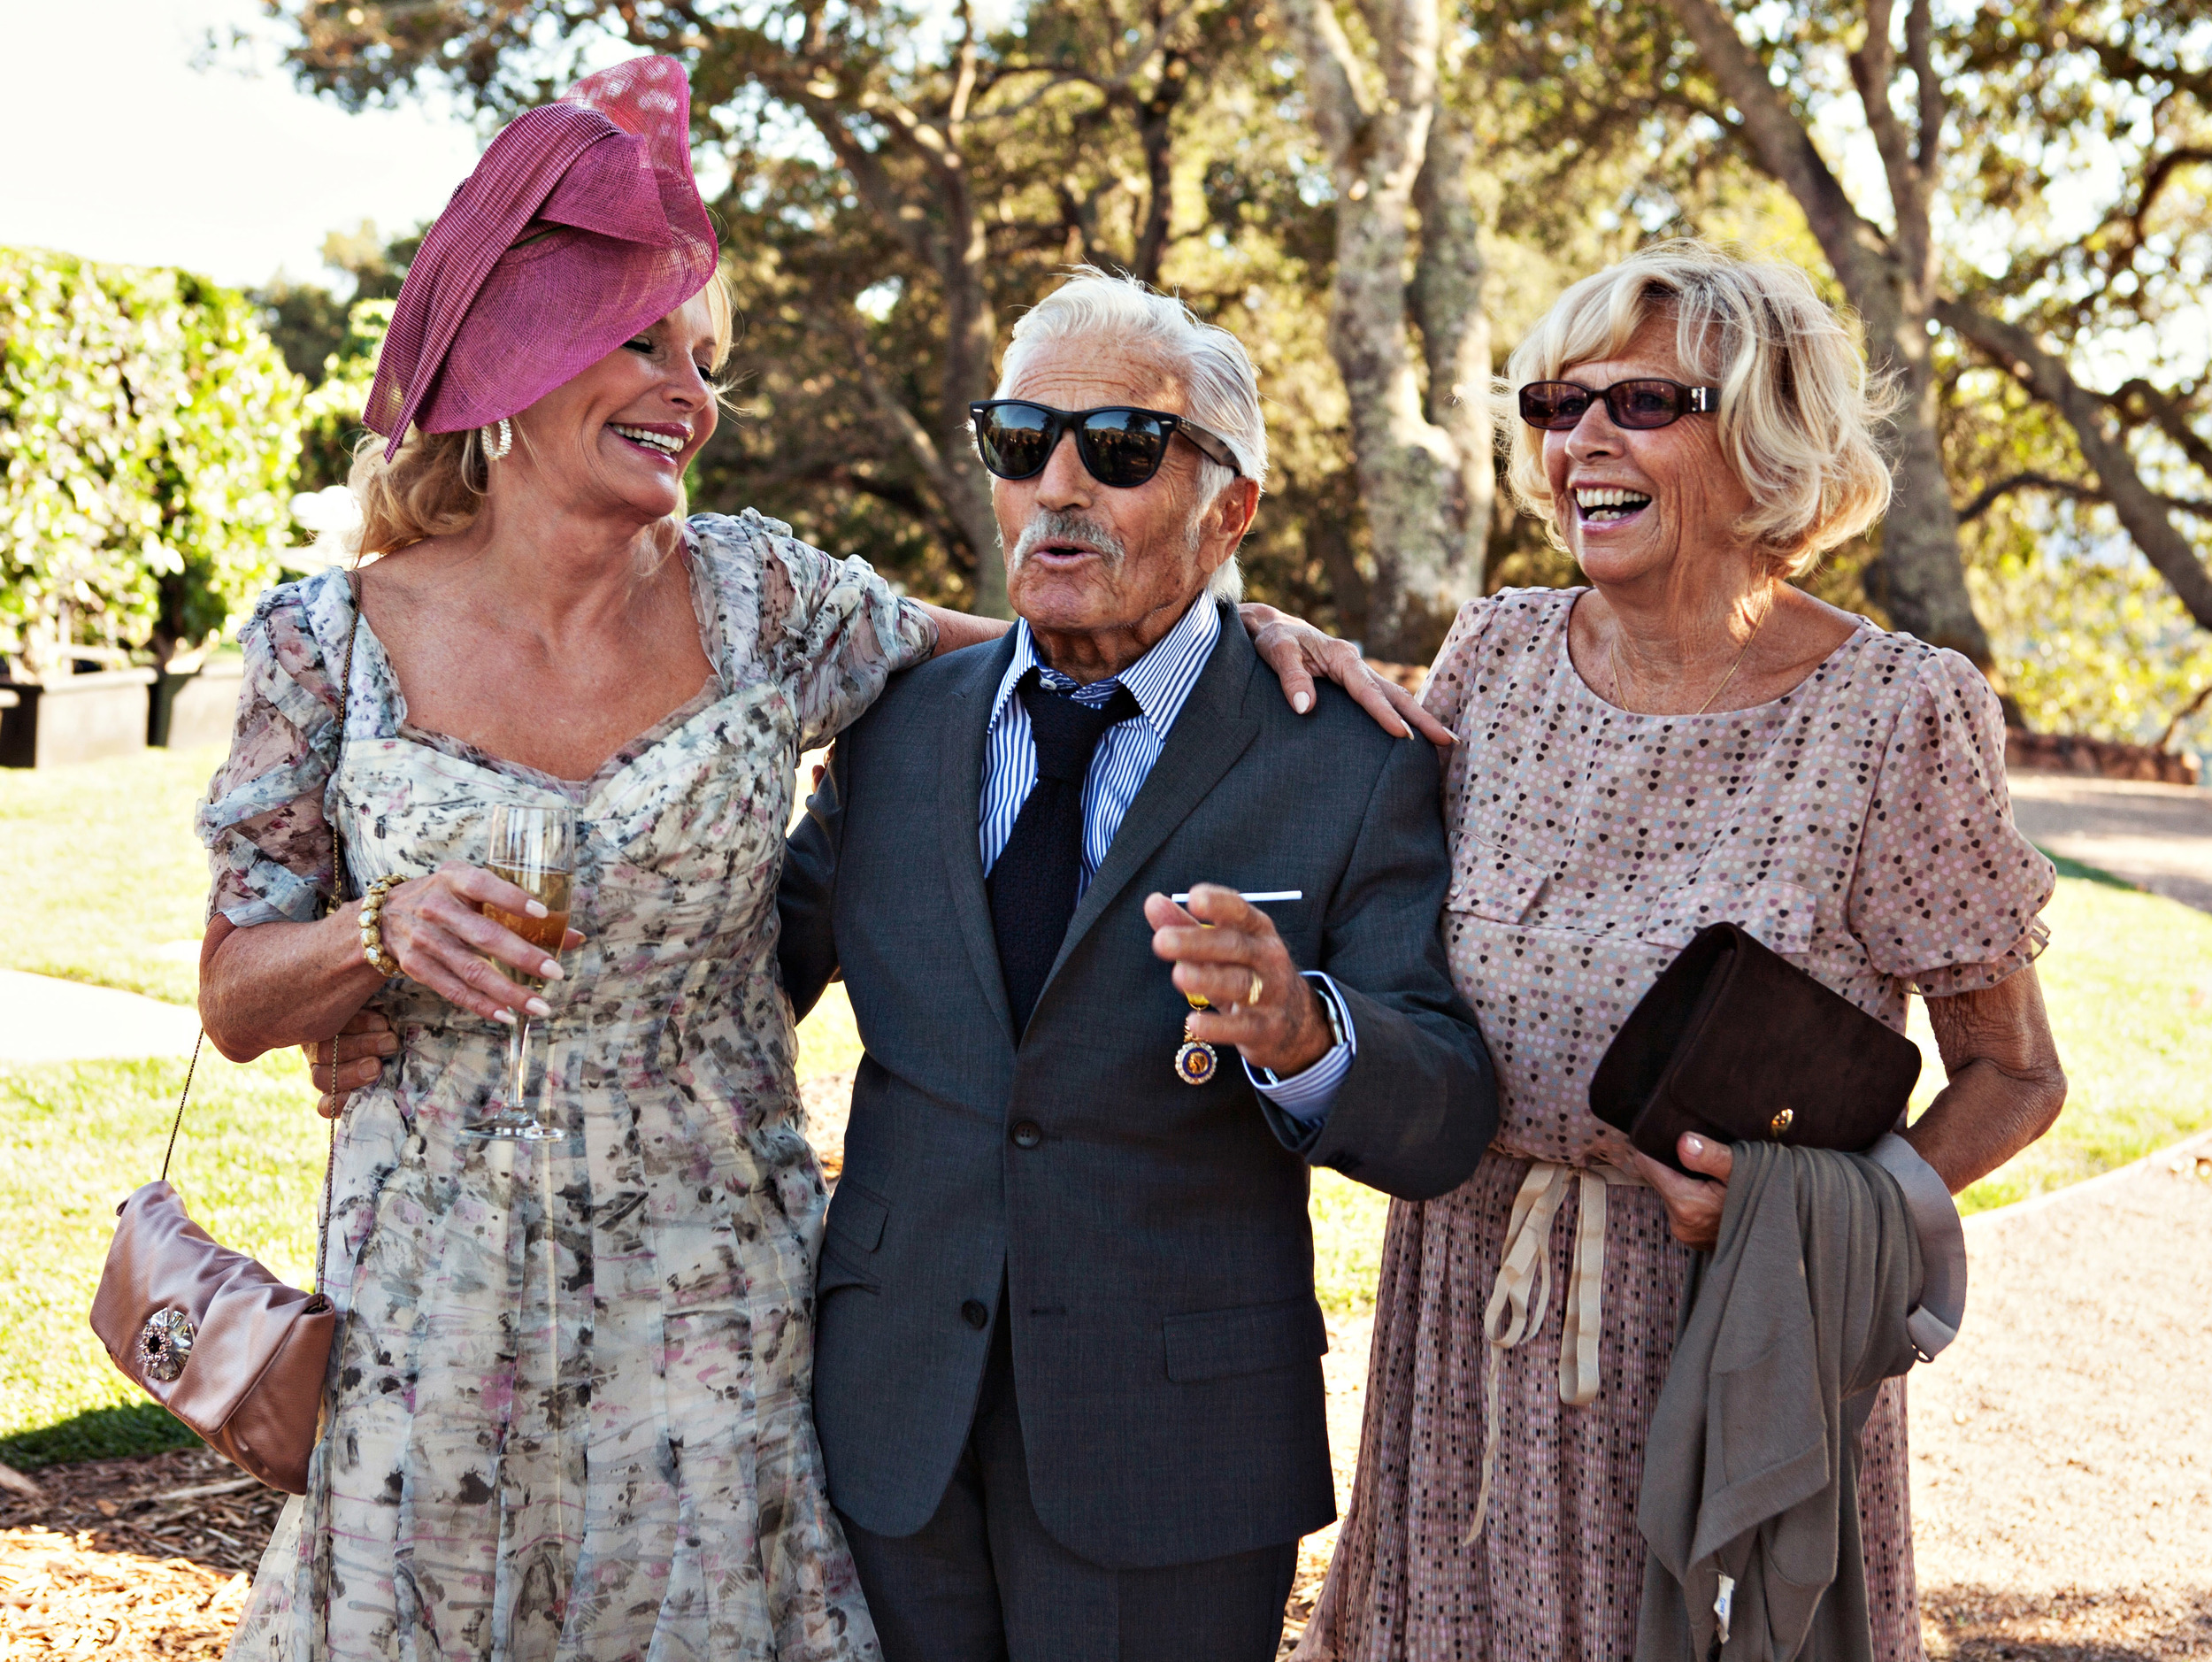 N pepe and the gals sonoma wedding.jpg